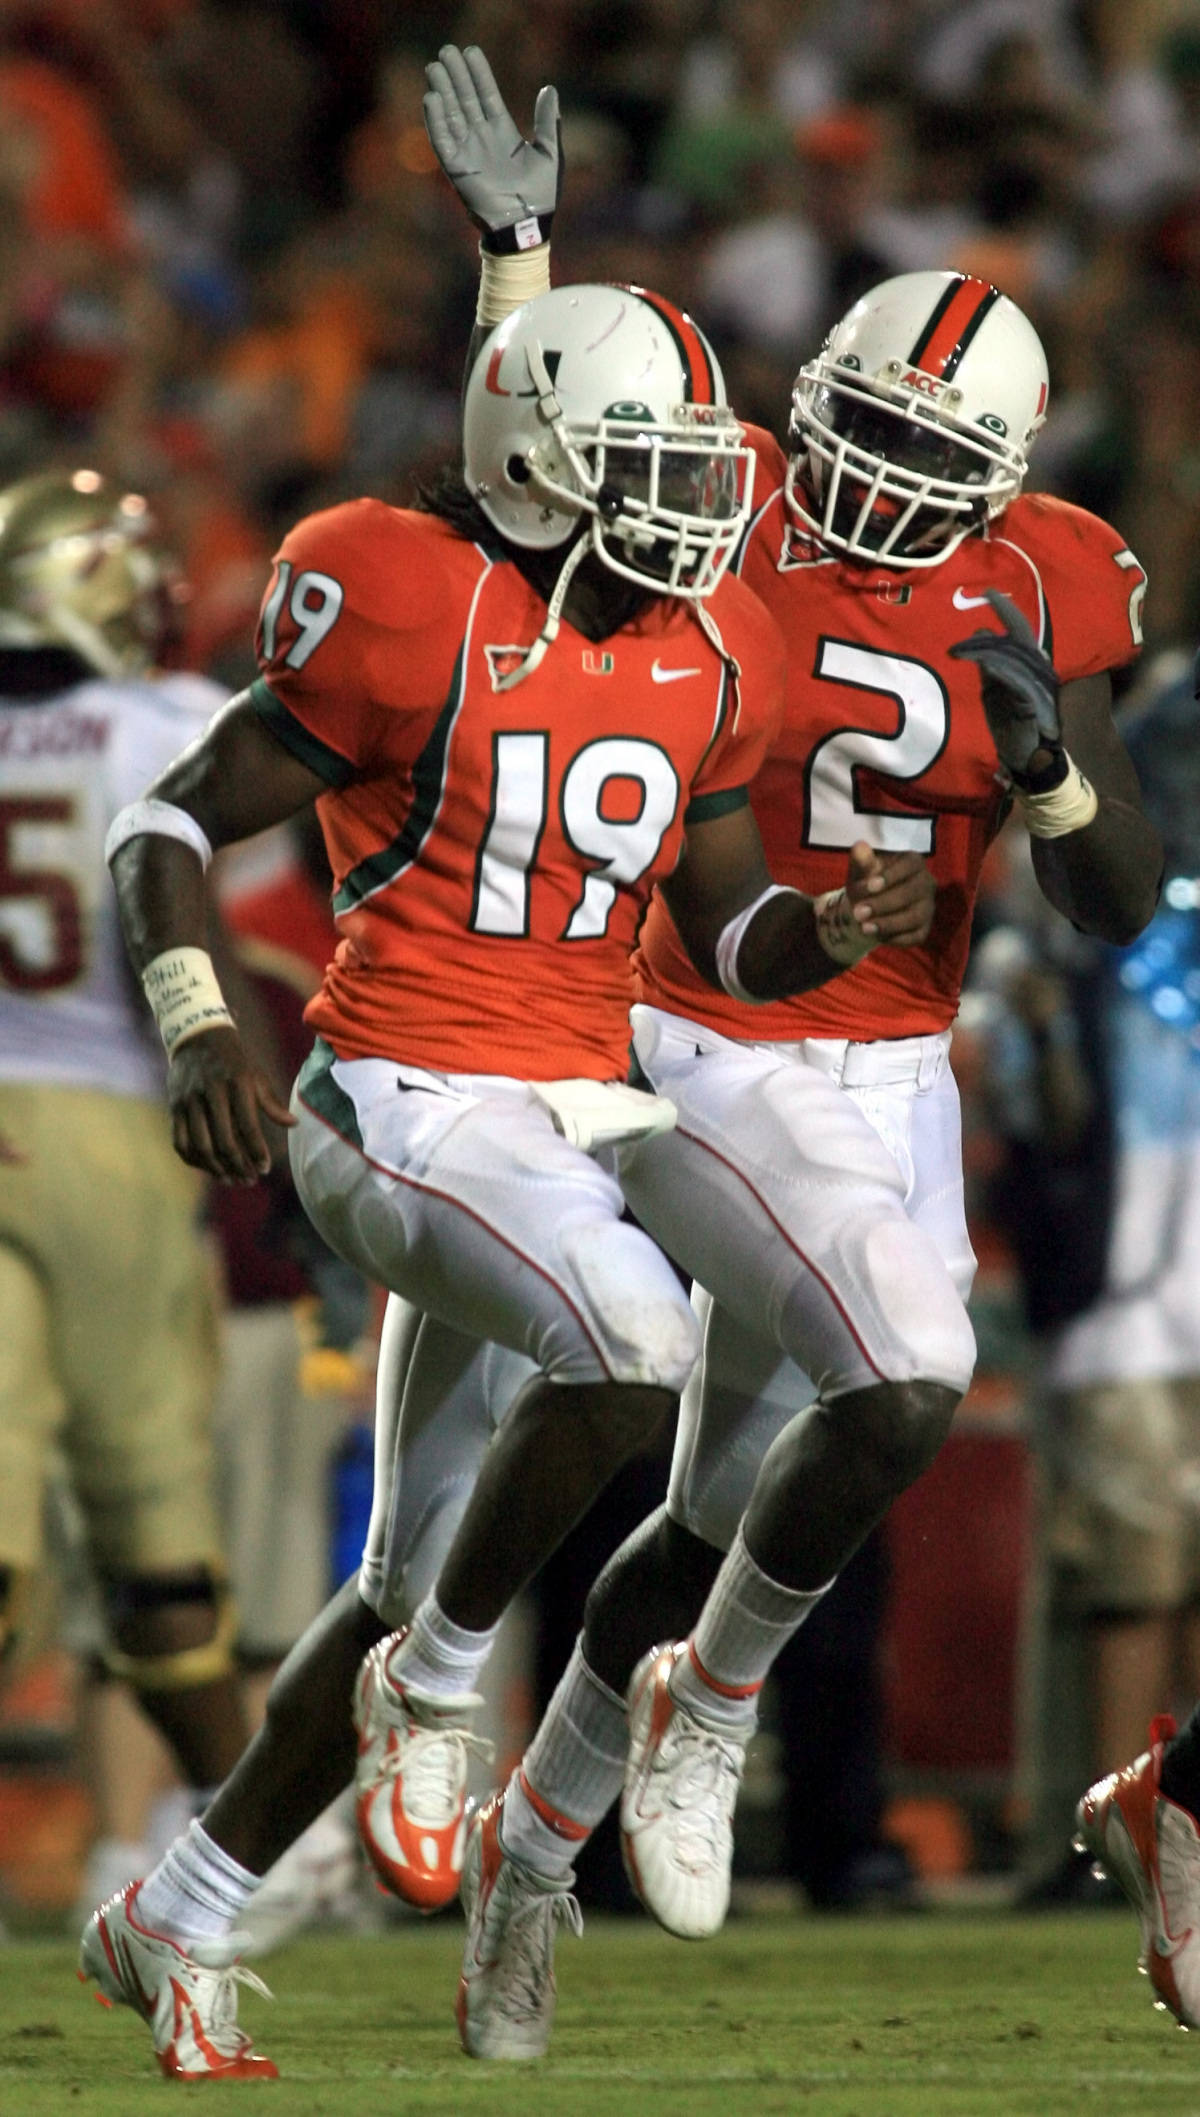 Miami safety Brandon Meriweather (19) is congratulated by linebacker Jon Beason after Meriweather intercepted a pass during the second quarter of football against Florida St., Monday, Sept. 4, 2006 at the Orange Bowl in Miami. (AP Photo/Luis M. Alvarez)